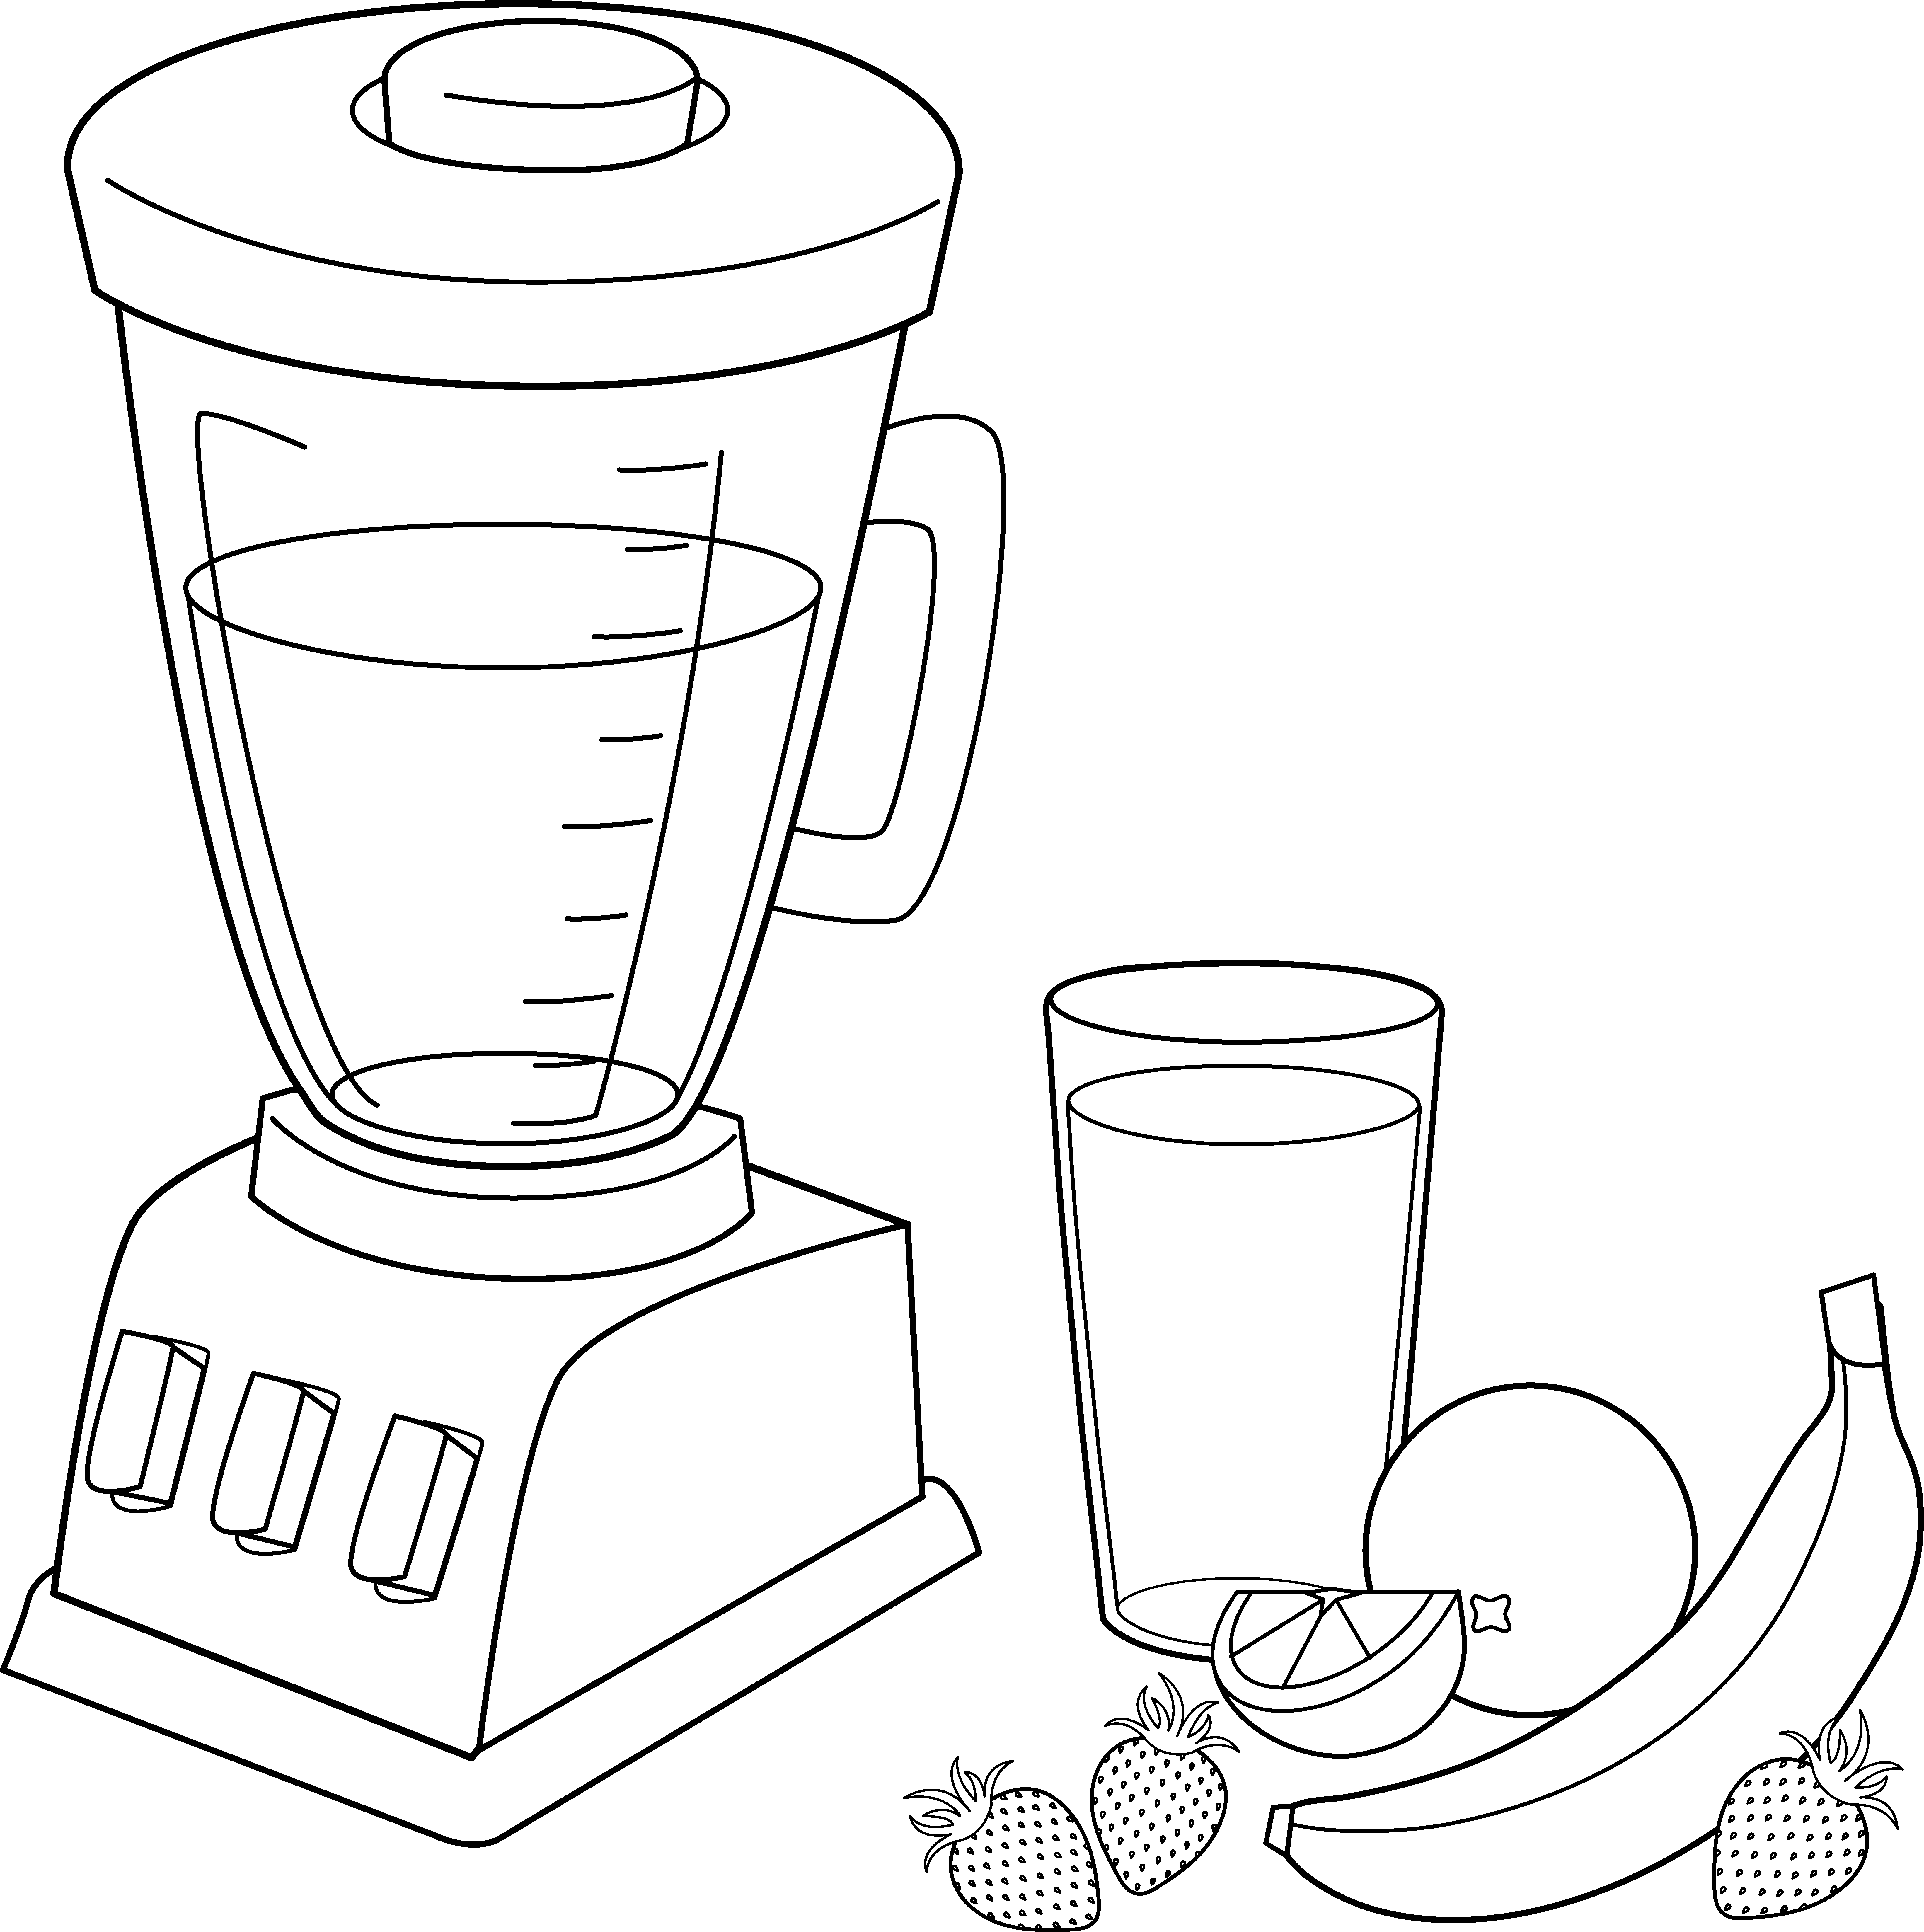 Unique fruit coloring pages. Blender clipart smoothie maker